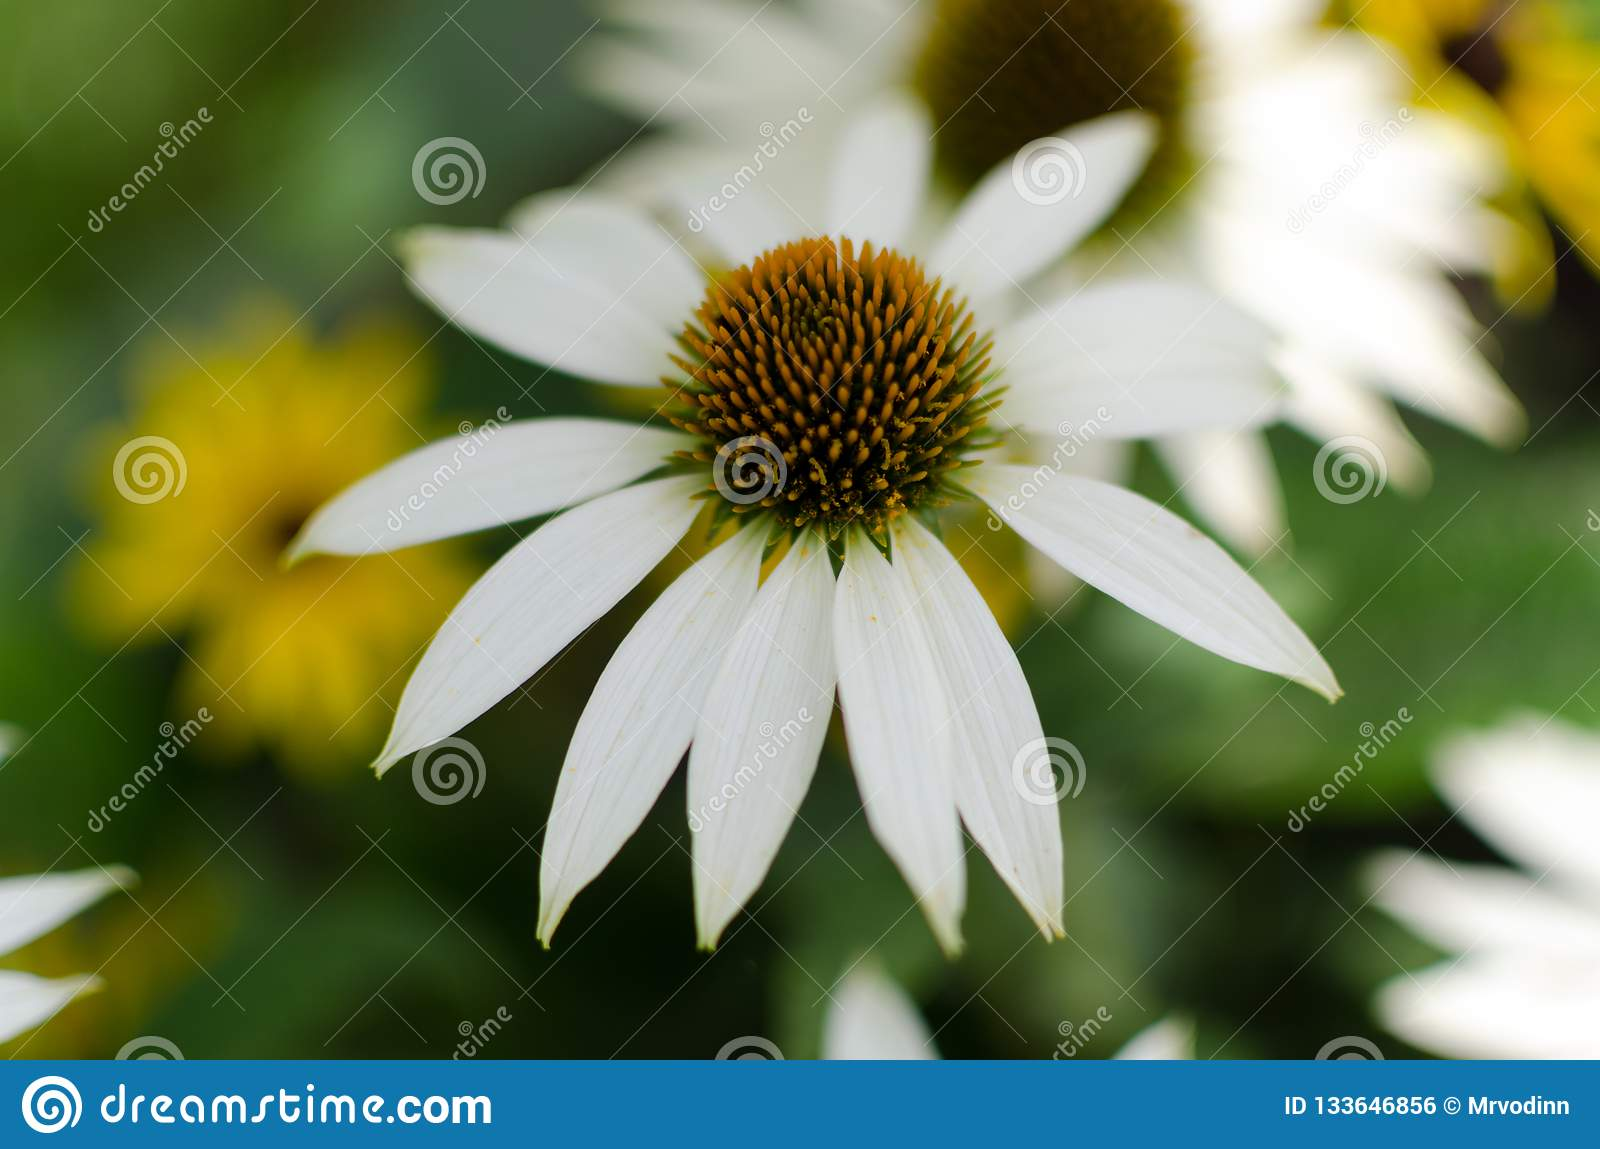 Echinacea purpurea «White swan» close up with a smudgy background of yellow and white flowers